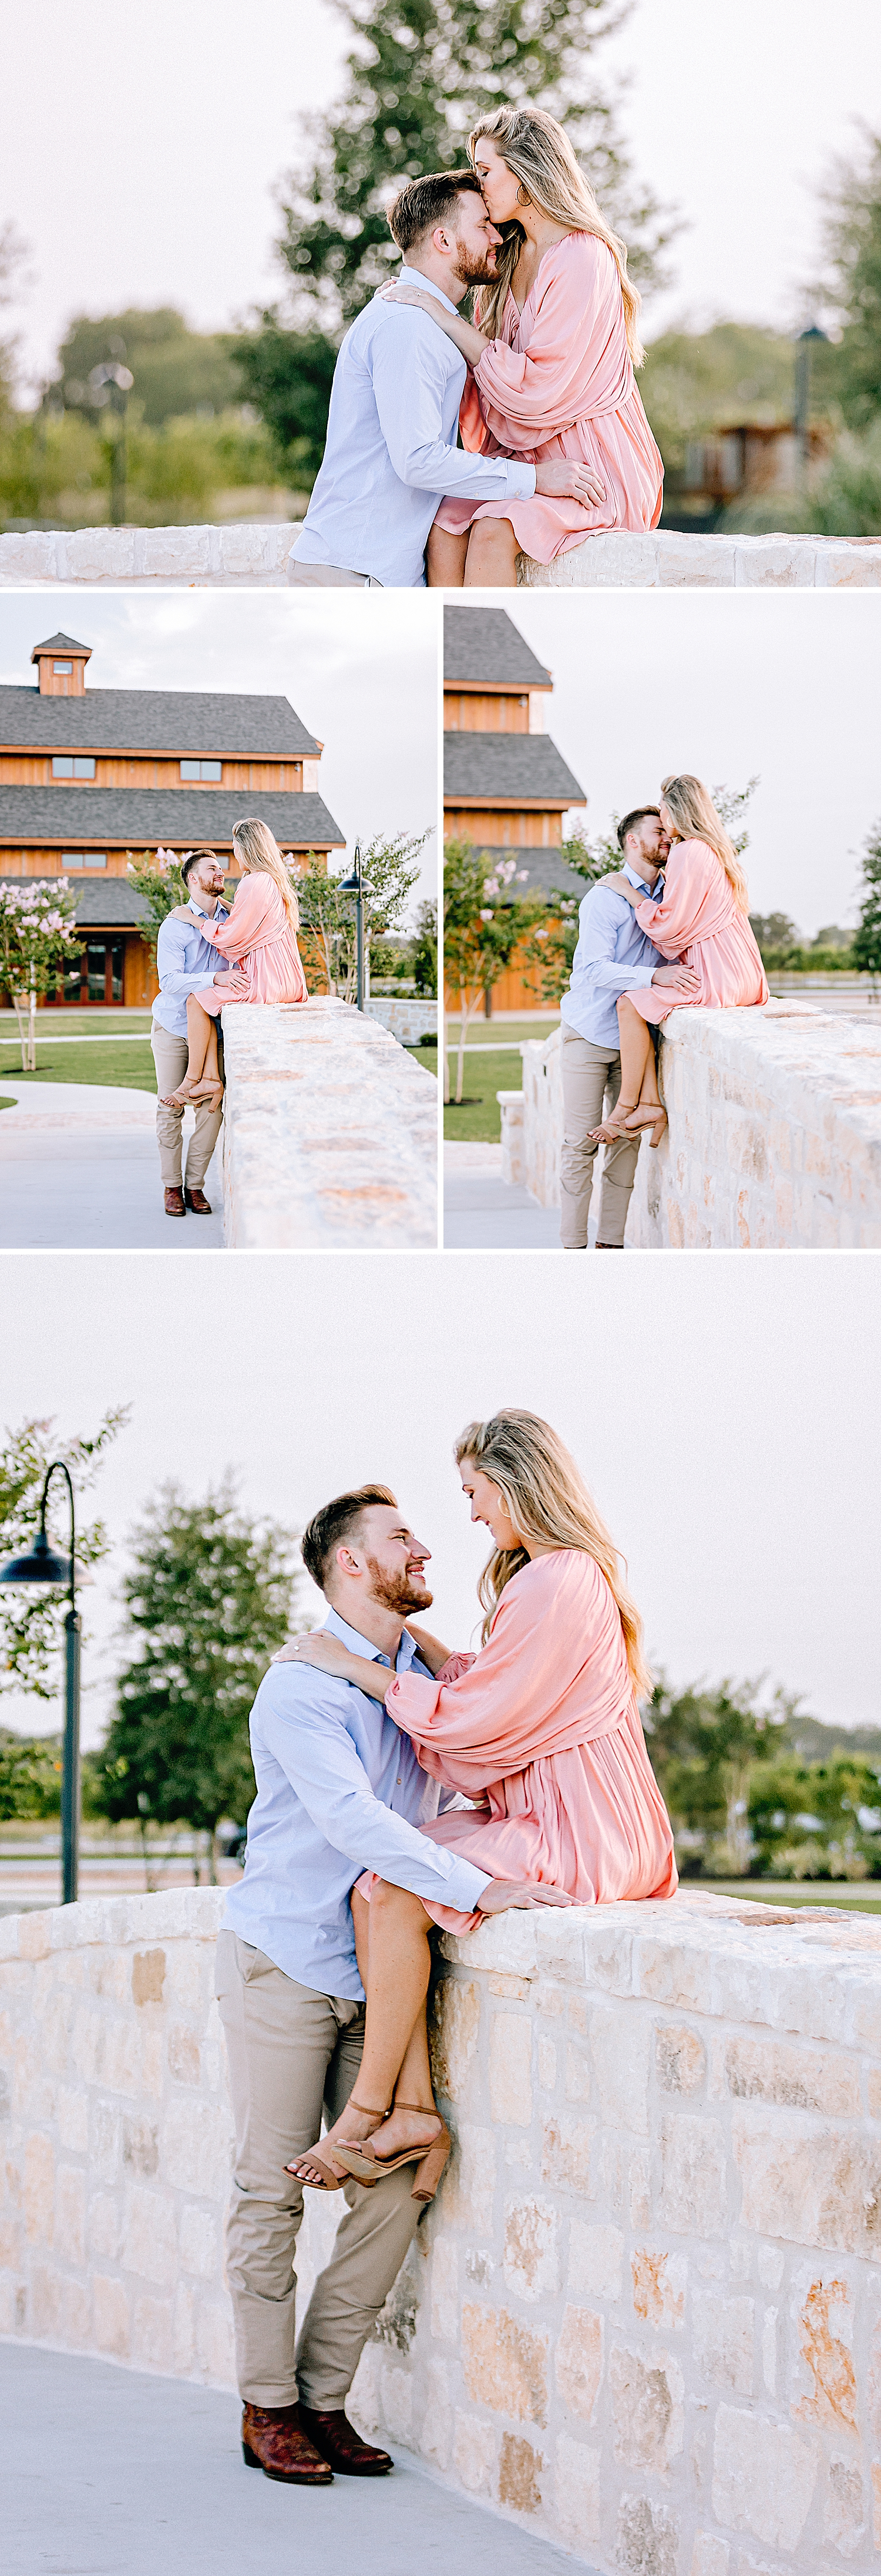 Carly-Barton-Photography-Engagement-Photos-College-Station-Texas-The-Weinberg-at-Wixon-Valley_0013.jpg